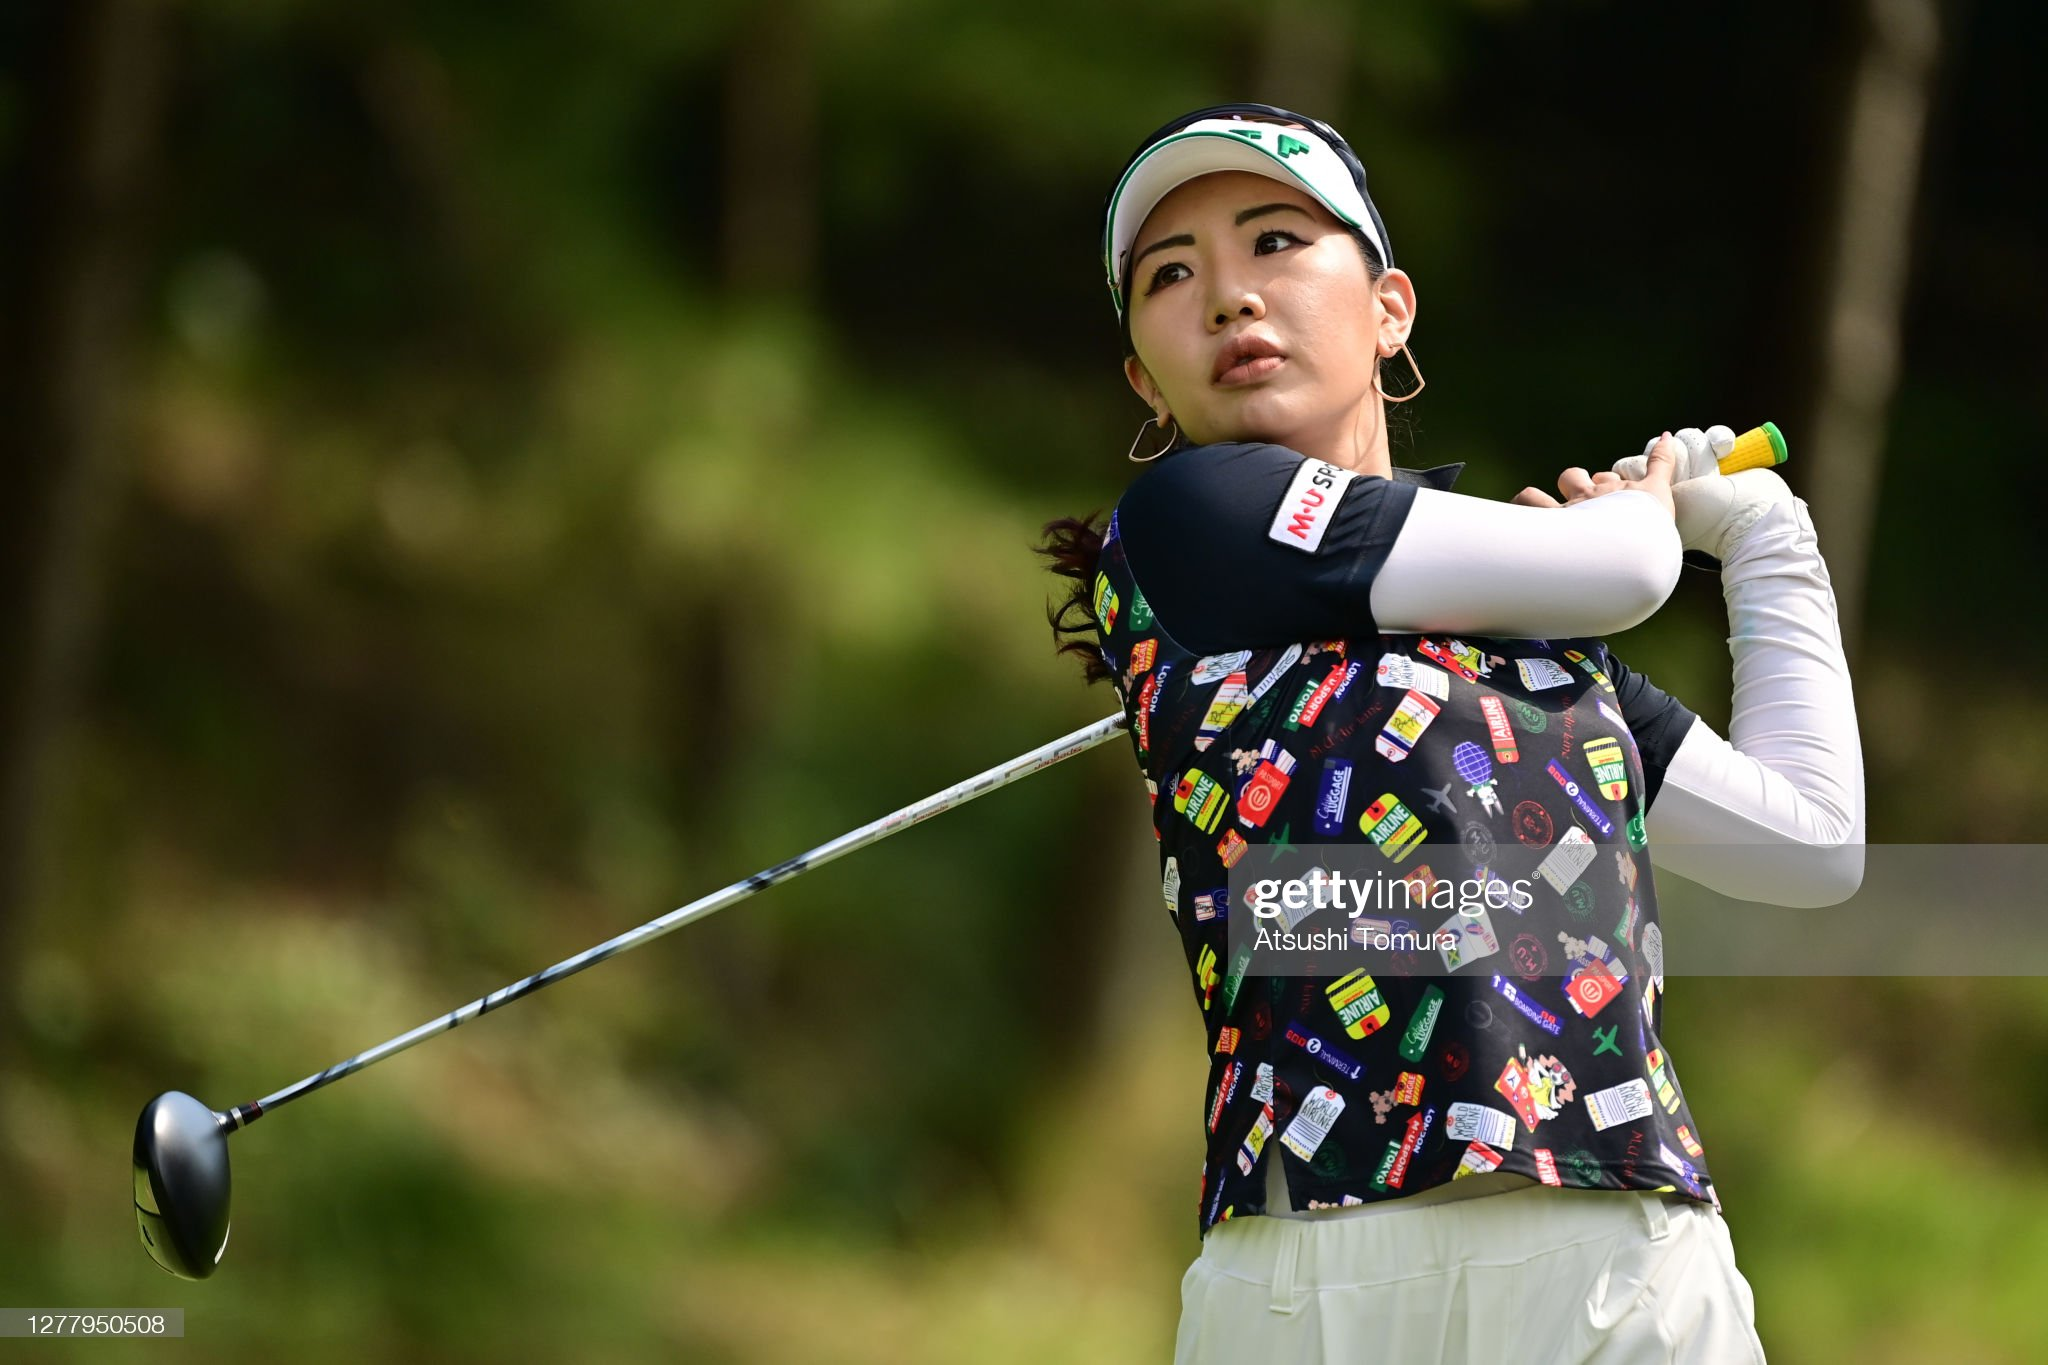 https://media.gettyimages.com/photos/aureum-hwang-of-south-korea-hits-her-tee-shot-on-the-8th-hole-during-picture-id1277950508?s=2048x2048